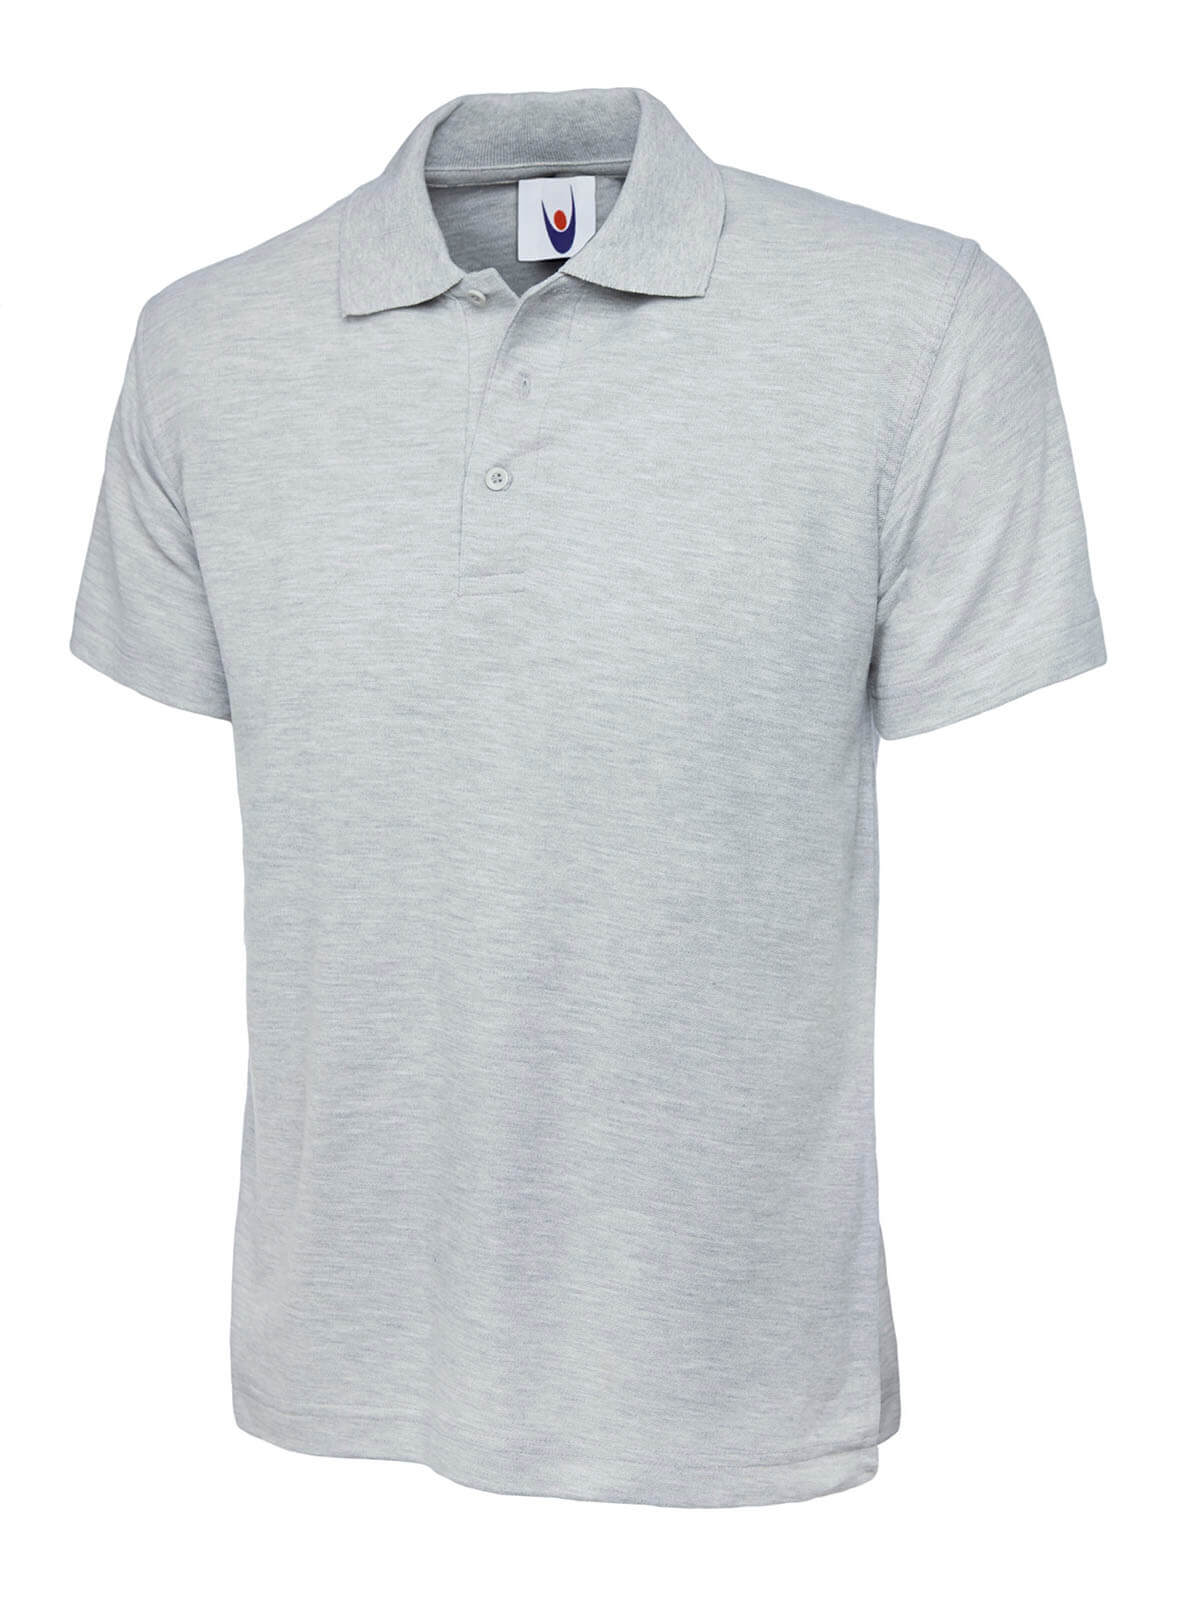 Pique Polo Shirt Custom Embroidered Workwear